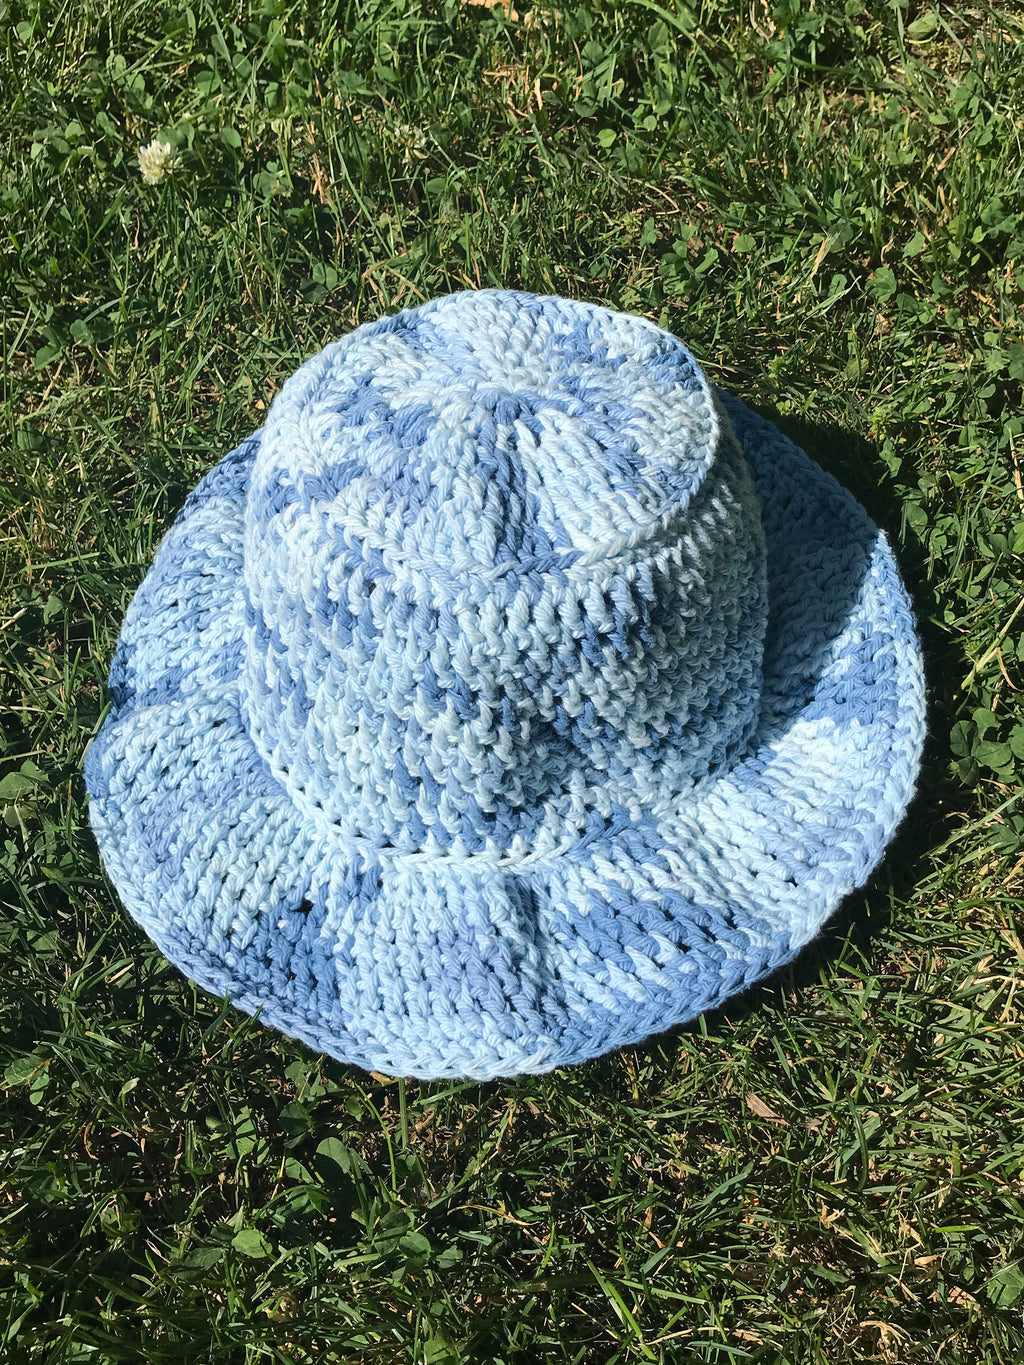 handmade crochet bucket hat in light blue spacedye space dye tie dye pattern100% cotton yarn wavy ruffle brim spring summer hat etsy depop pintrest urban outfitters zara aesthetic trend 90s y2k buy for sale cost ideas measurements size material dimensions designs easy light blue dark blue medium blue hand crocheted womens adult adults size